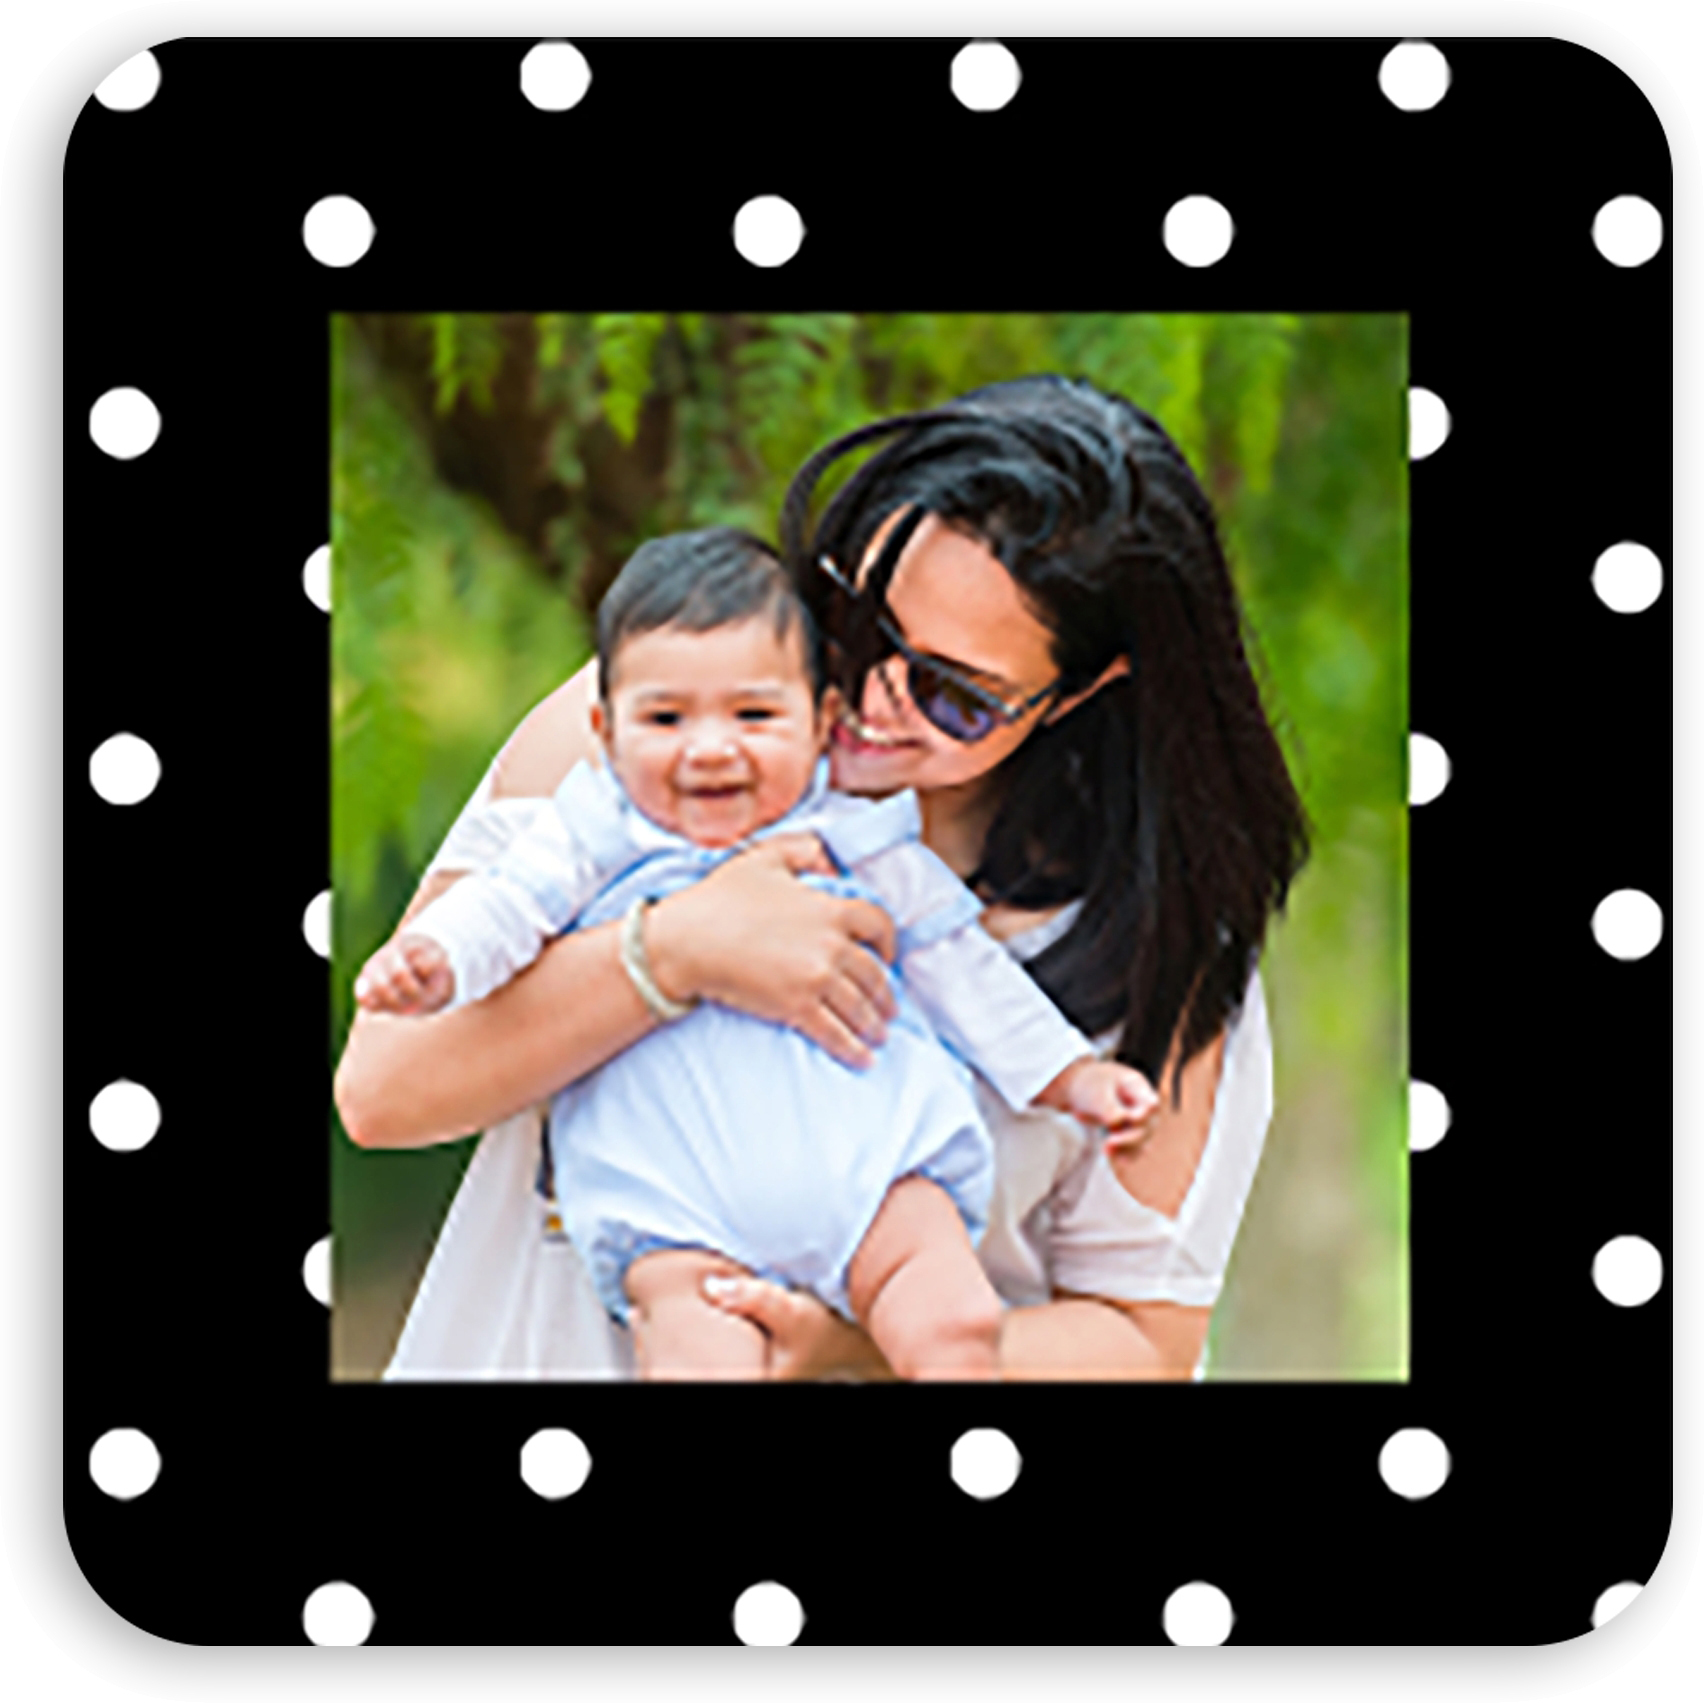 Dotted - Personalized 1.75 x 1.75 Square Seal Sticker